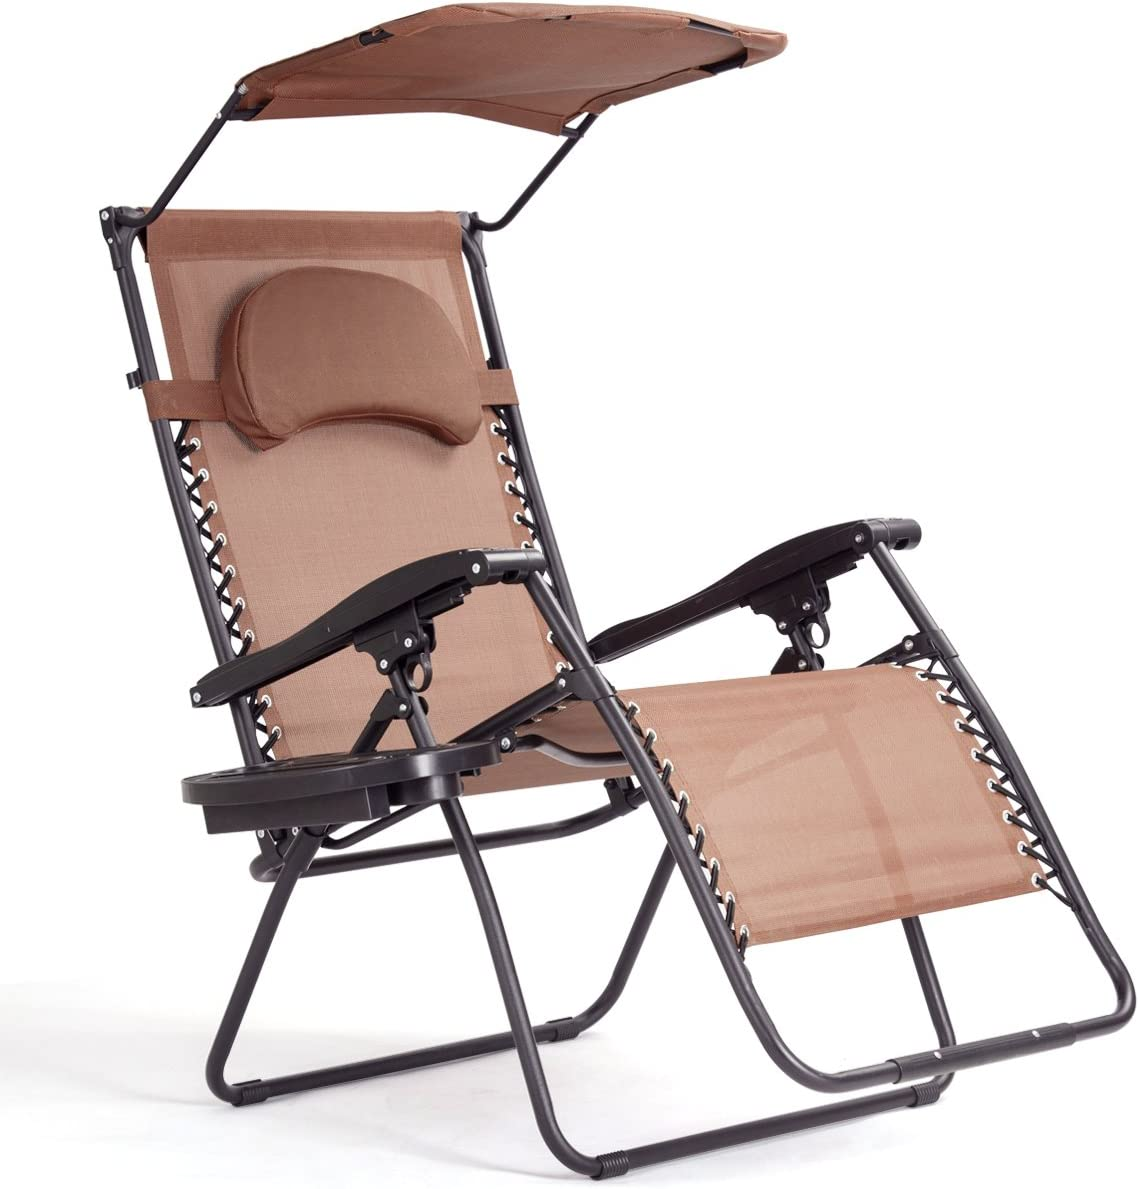 S AFSTAR Zero Gravity Chair with Recliner Pati Canopy Don't Special Campaign miss the campaign Shade for